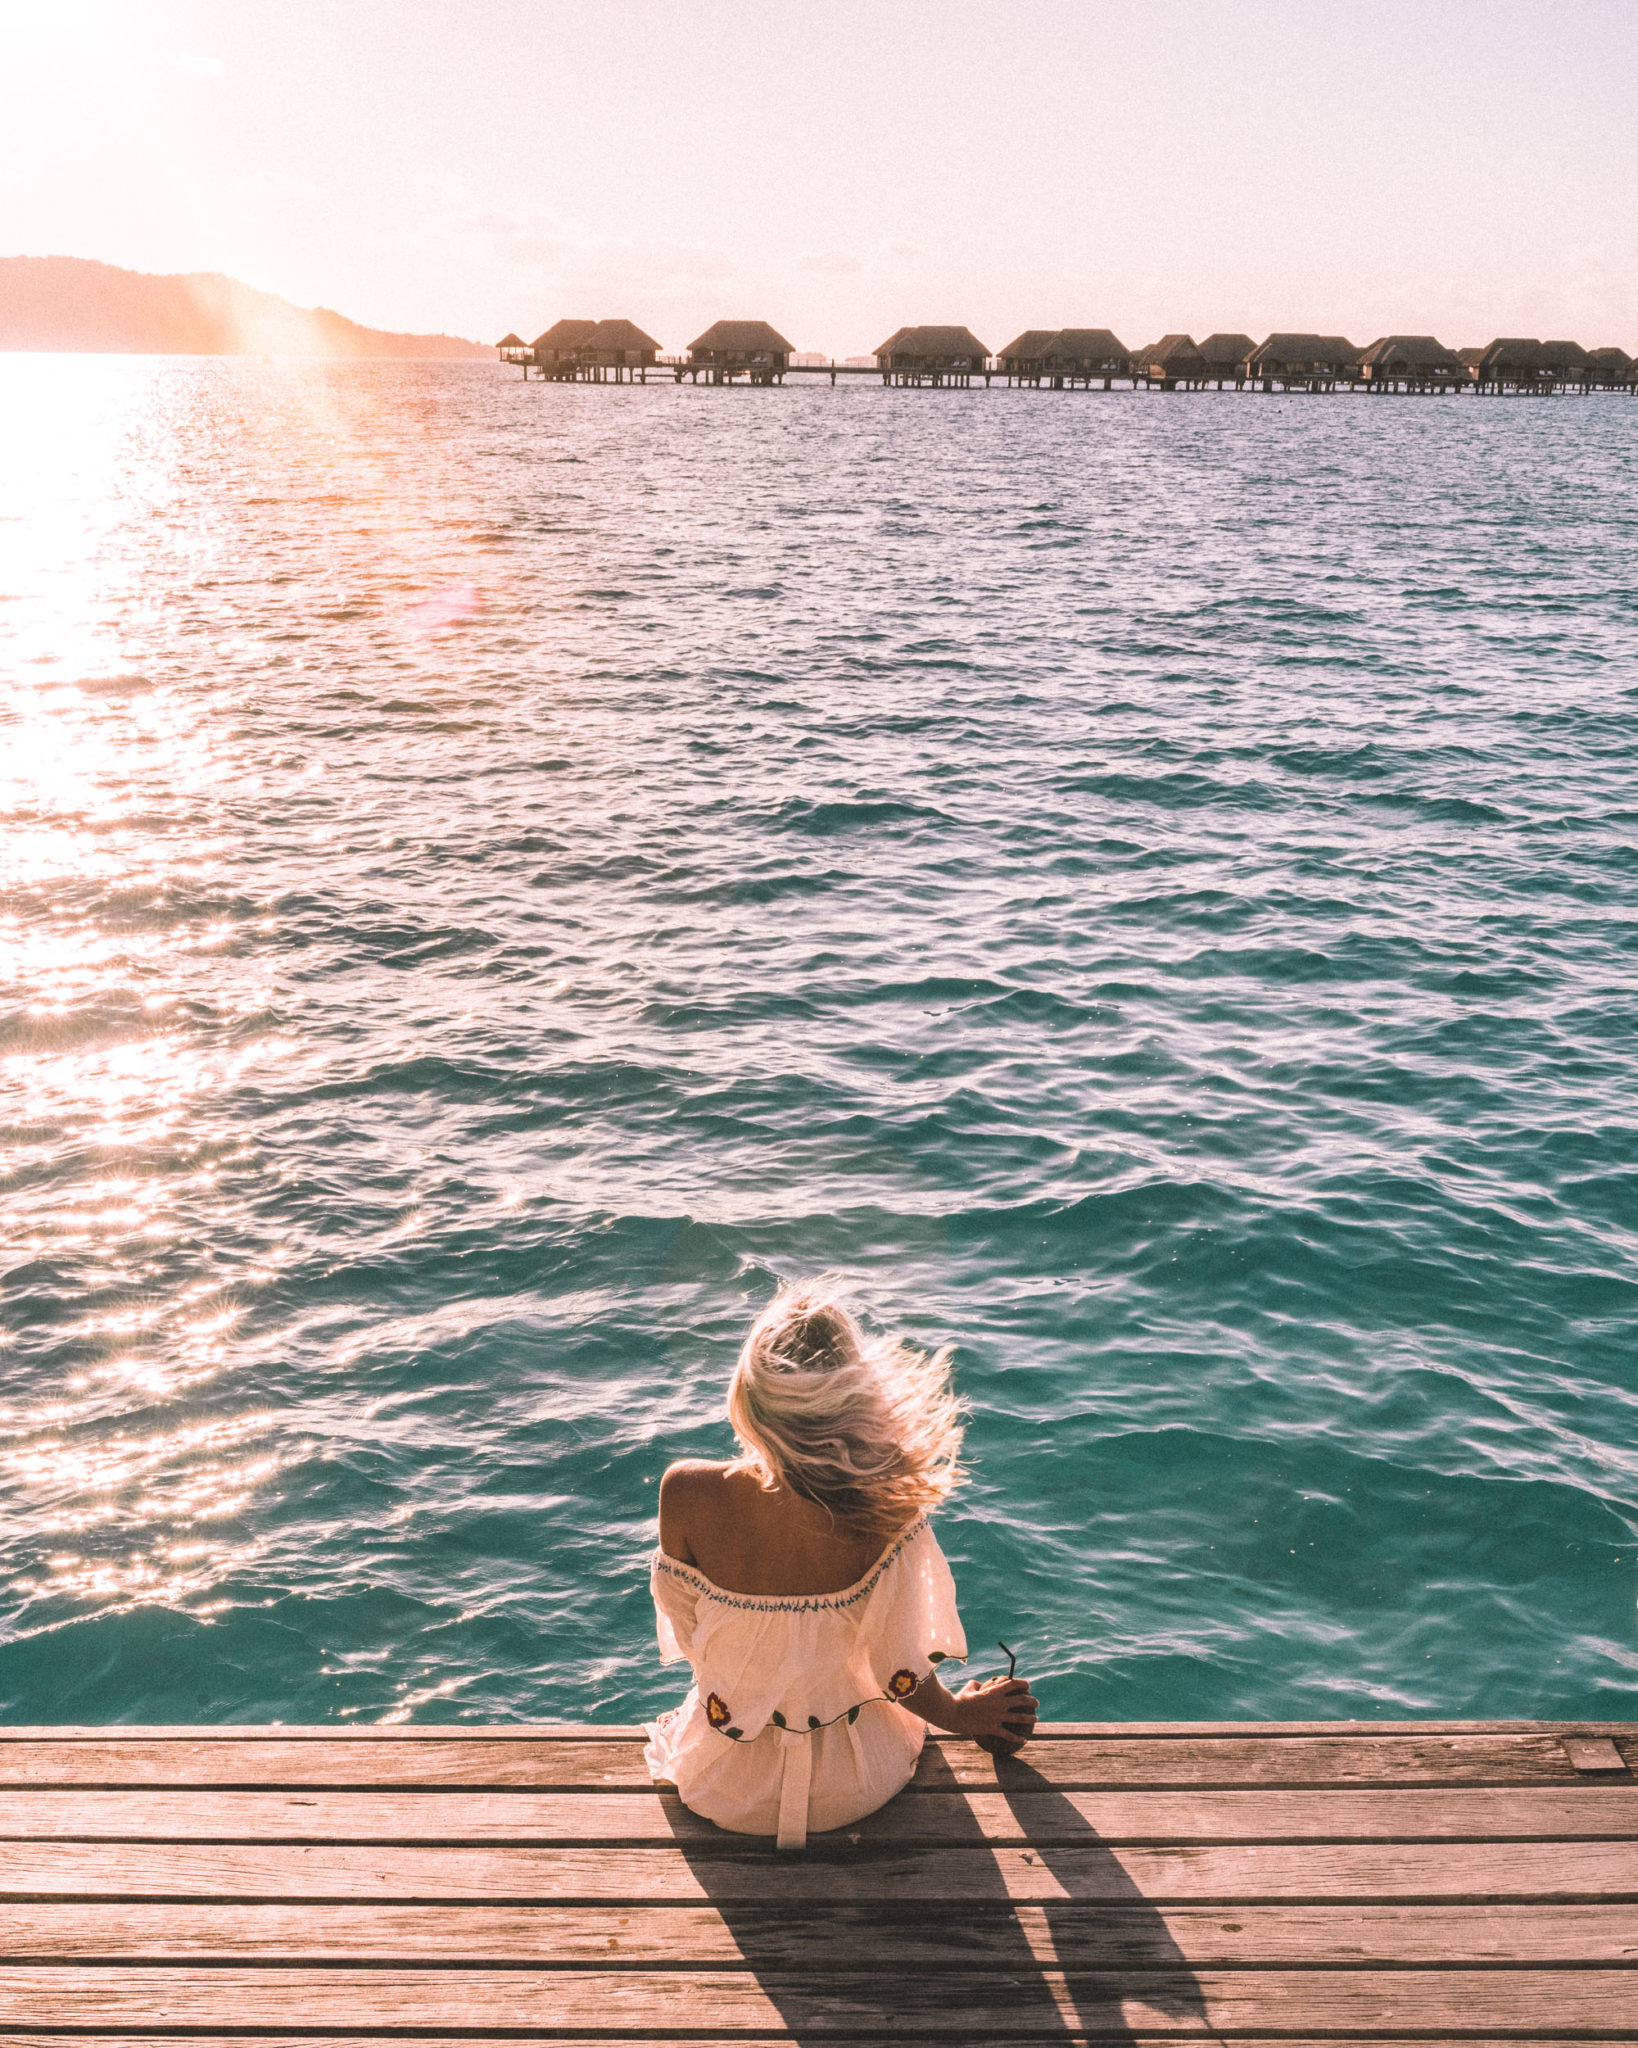 Watching the sunset at Four Seasons Bora Bora for our honeymoon via @finduslost